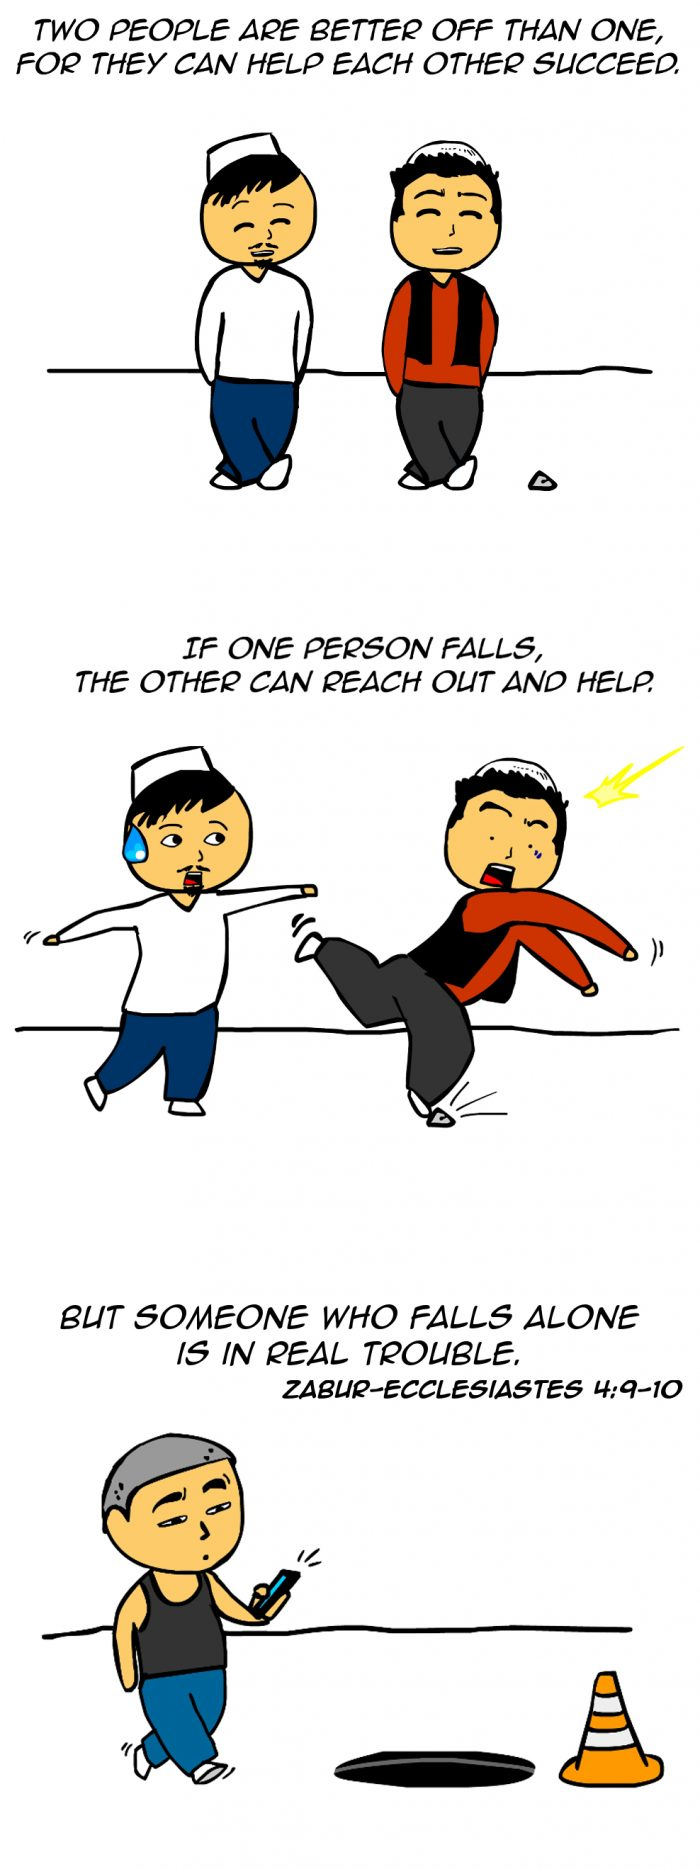 "Kitab Comics ""Two people are better off than one, for they can help each other succeed. If one person falls, the other can reach out and help. But someone who falls alone is in real trouble."" -Zabur-Ecclesiastes 4:9-10"